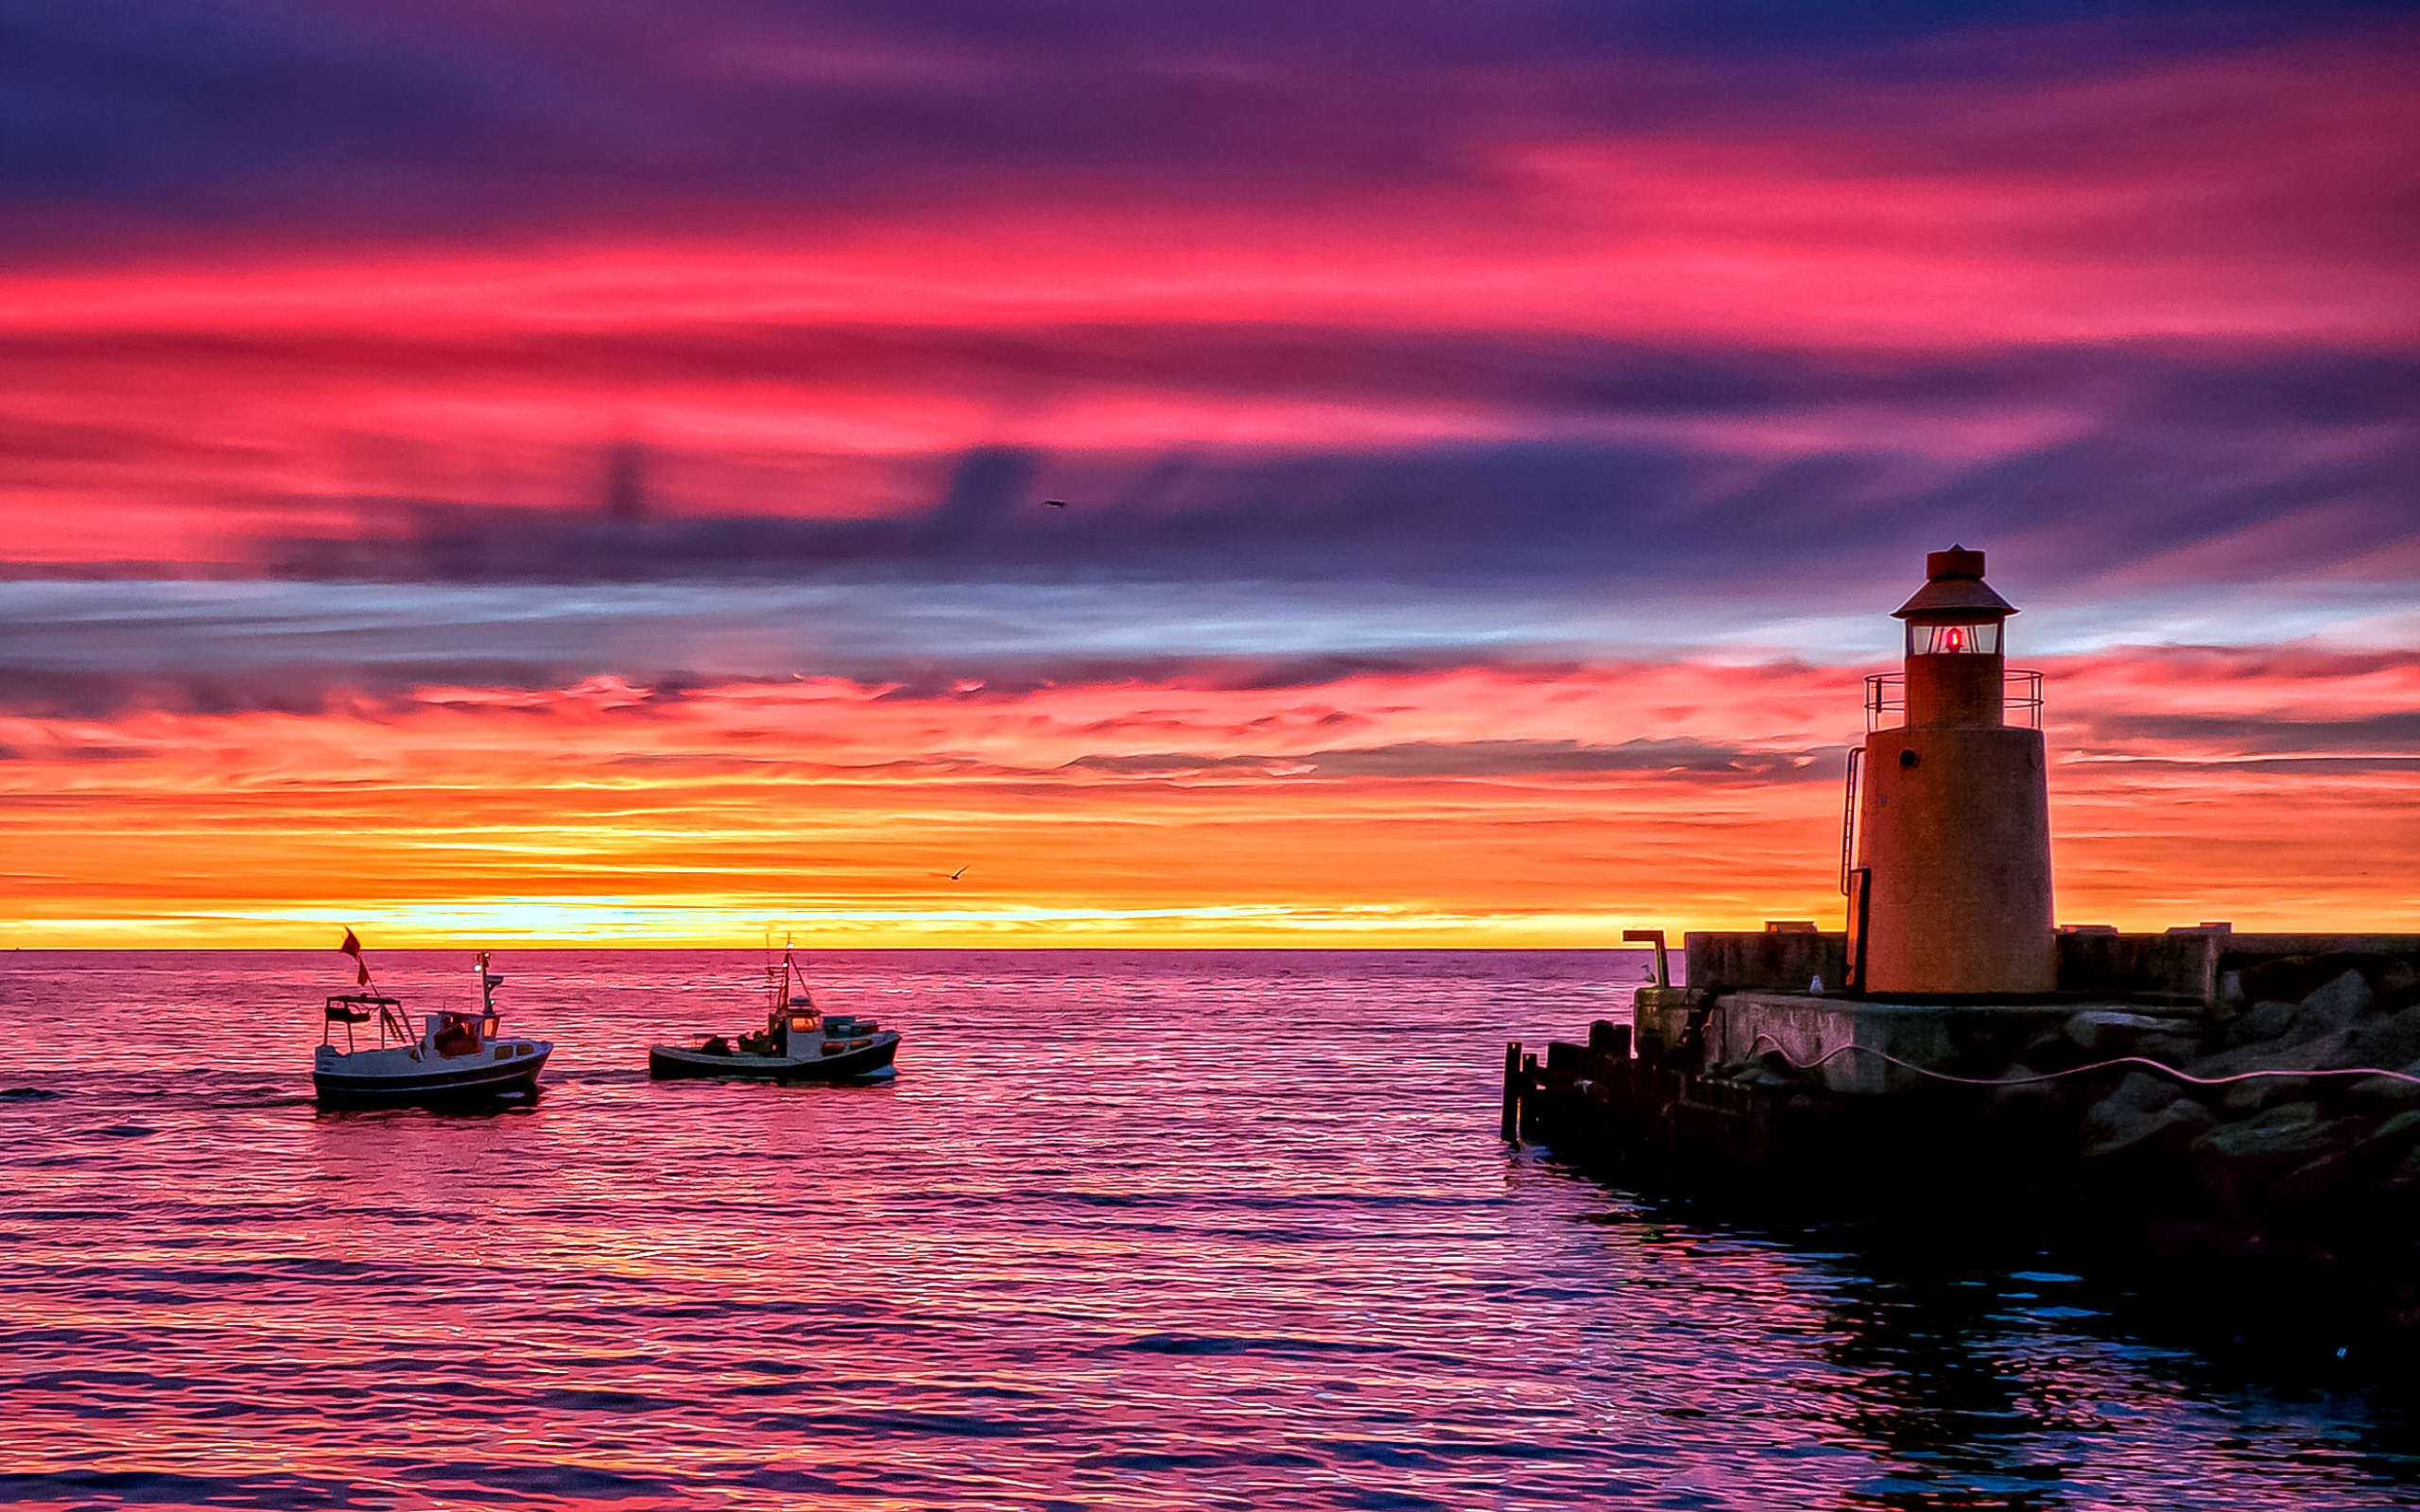 Lighthouse Hd Wallpapers: Lighthouse Wallpapers High Quality